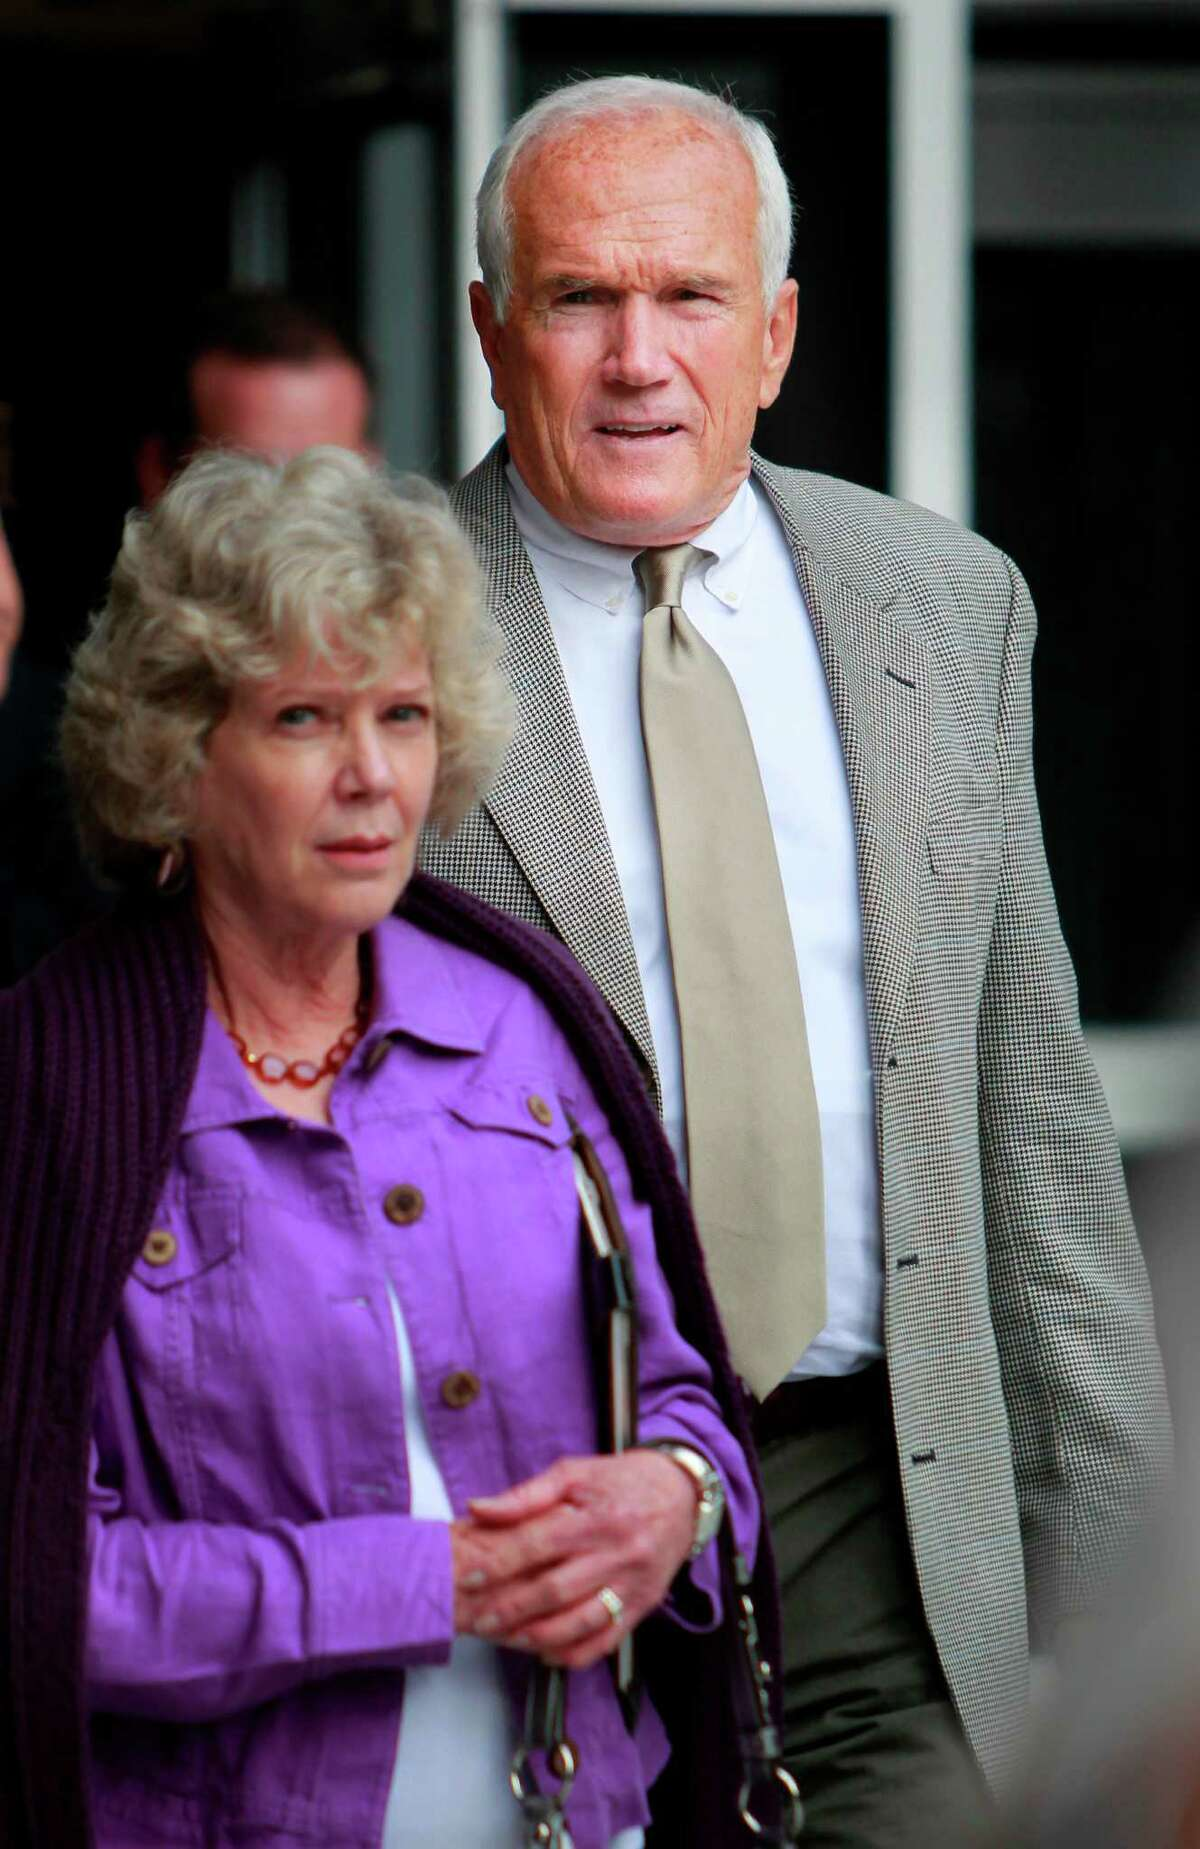 Harris County Commissioner Jerry Eversole and his wife exits the Bob Casey Federal Courthouse on Tuesday, March 29, 2011, in Houston. After three days of deliberating, a jury in the federal corruption trial against Eversole remains deadlocked and will return Wednesday to continue working on the case. ( Mayra Beltran / Chronicle )